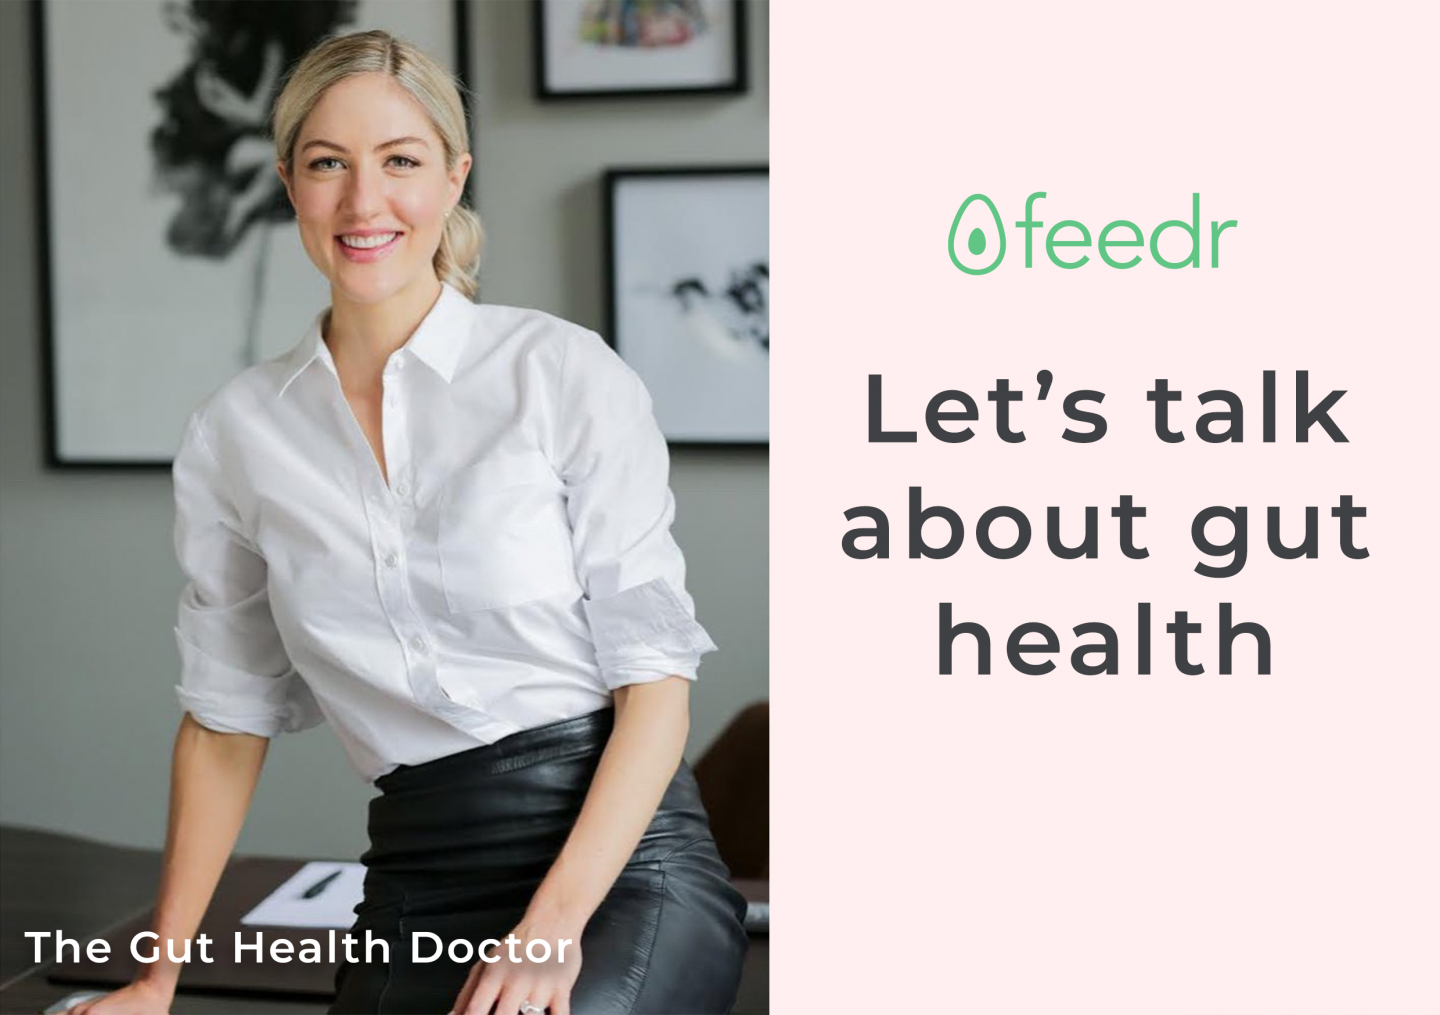 Let's Talk About Gut Health